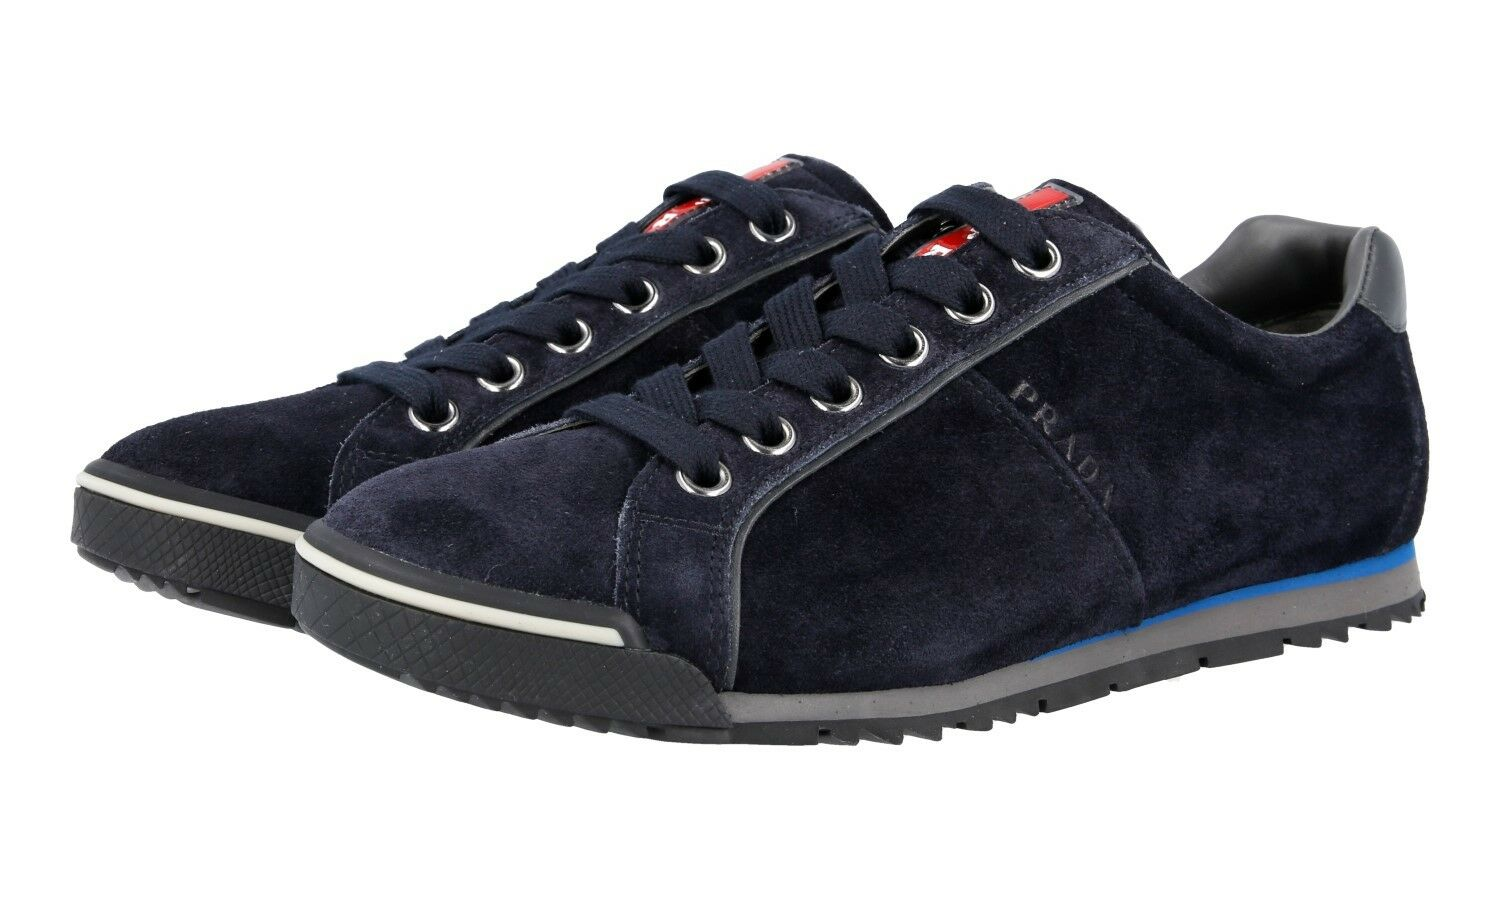 AUTH LUXURY PRADA SNEAKERS SHOES 4E2719 blueE SUEDE NEW 7 41 41,5